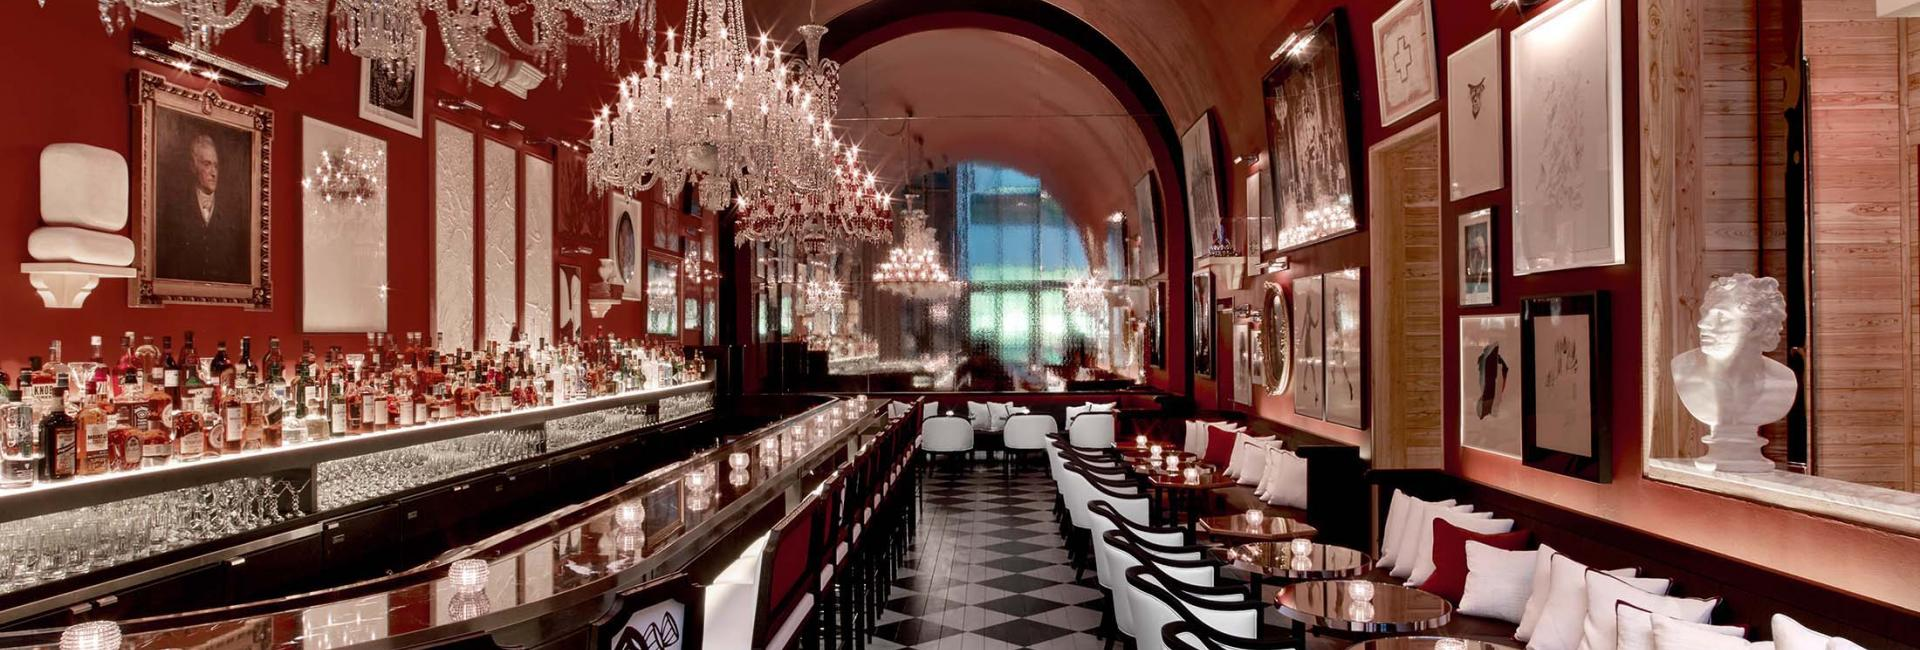 hotel interior baccarat hotel the bar 2 2015 - Baccarat Hotel